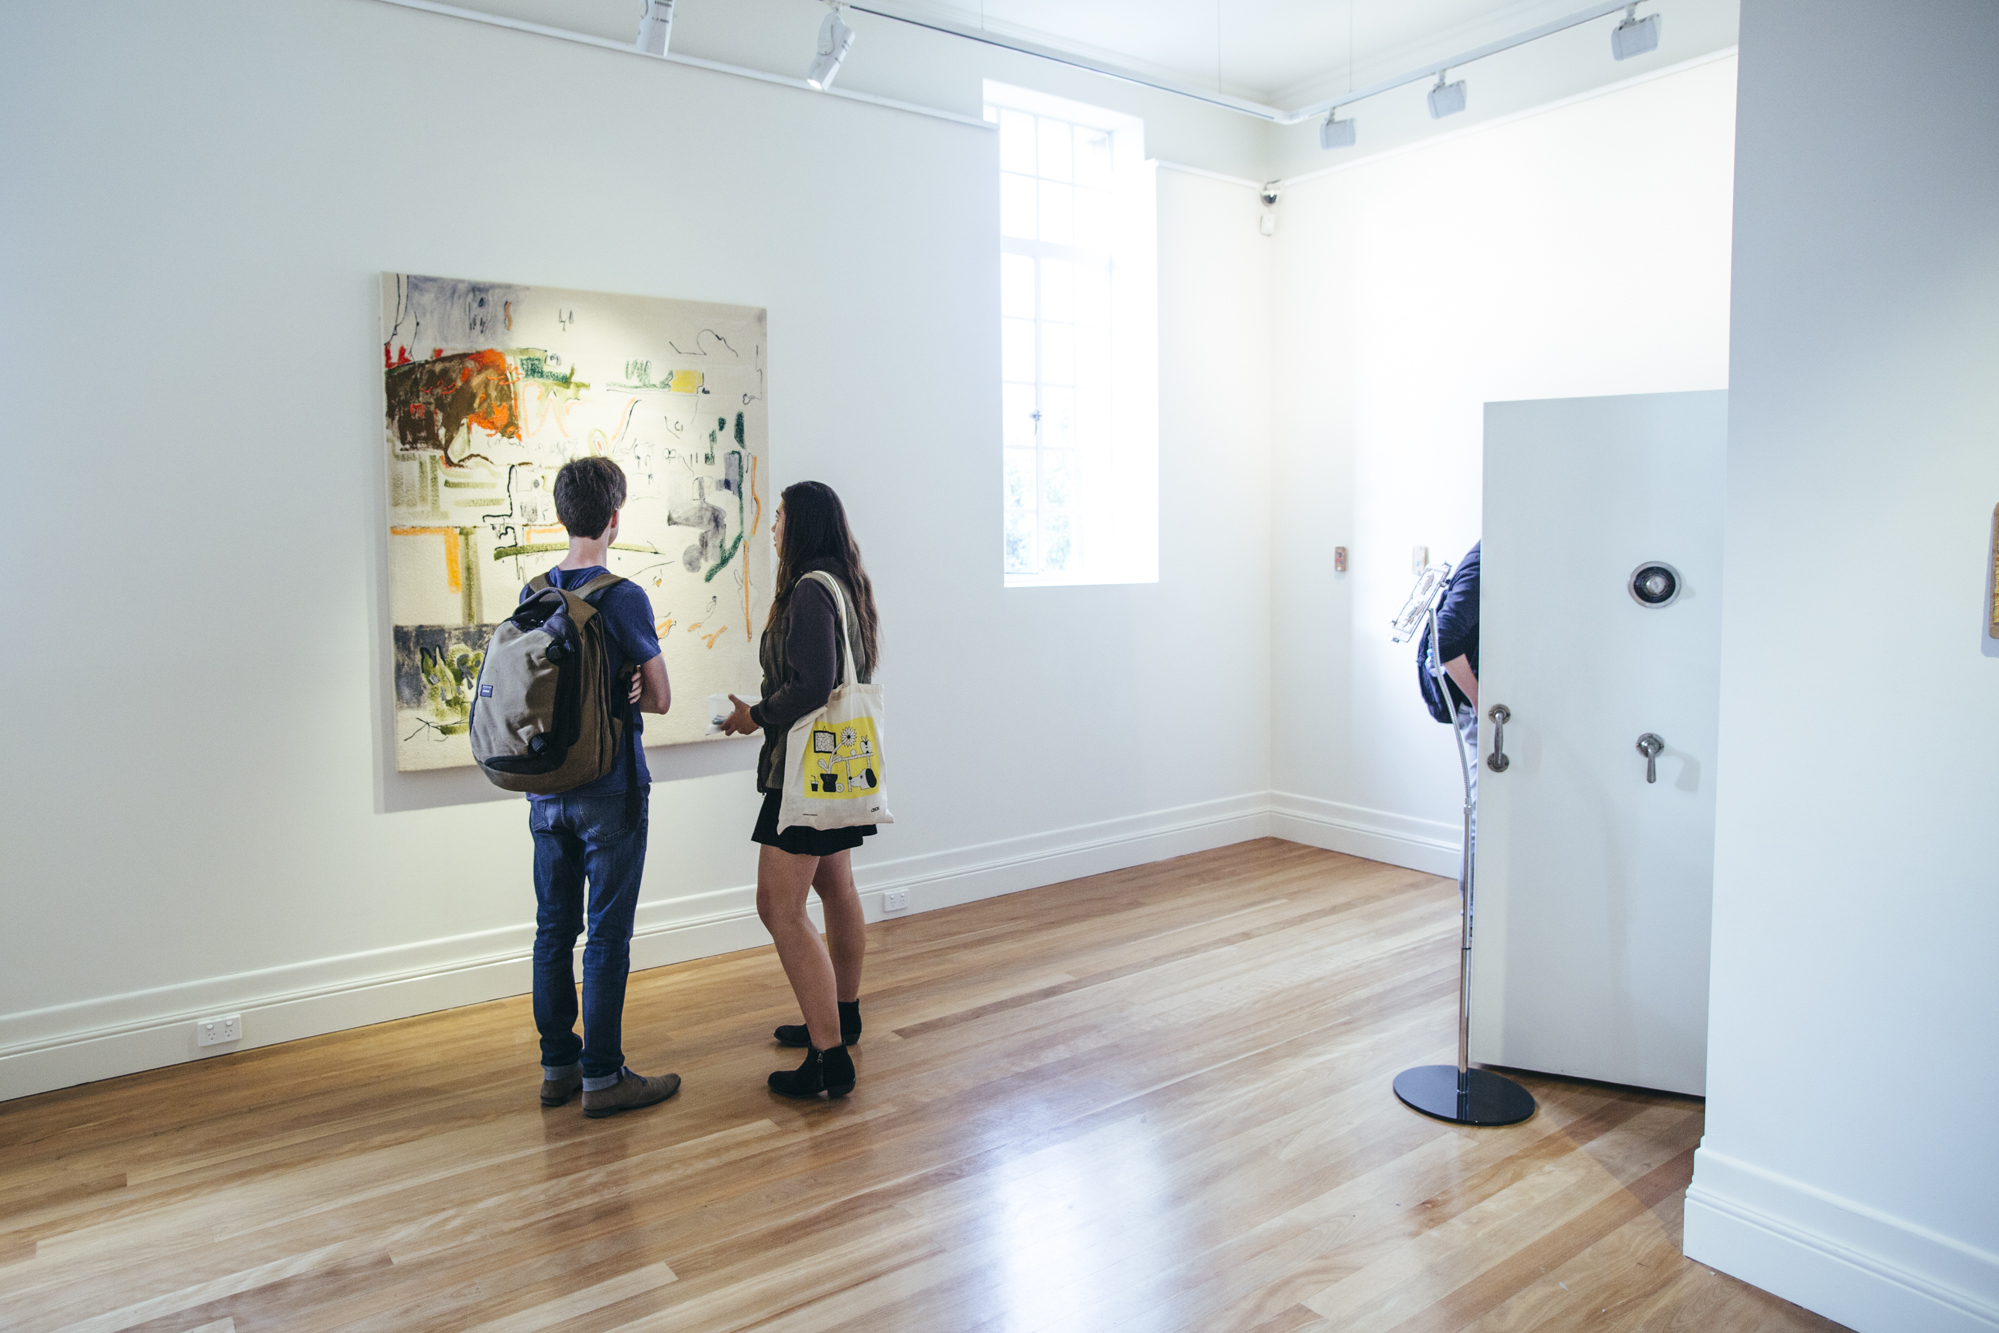 How To Design An Art Exhibition